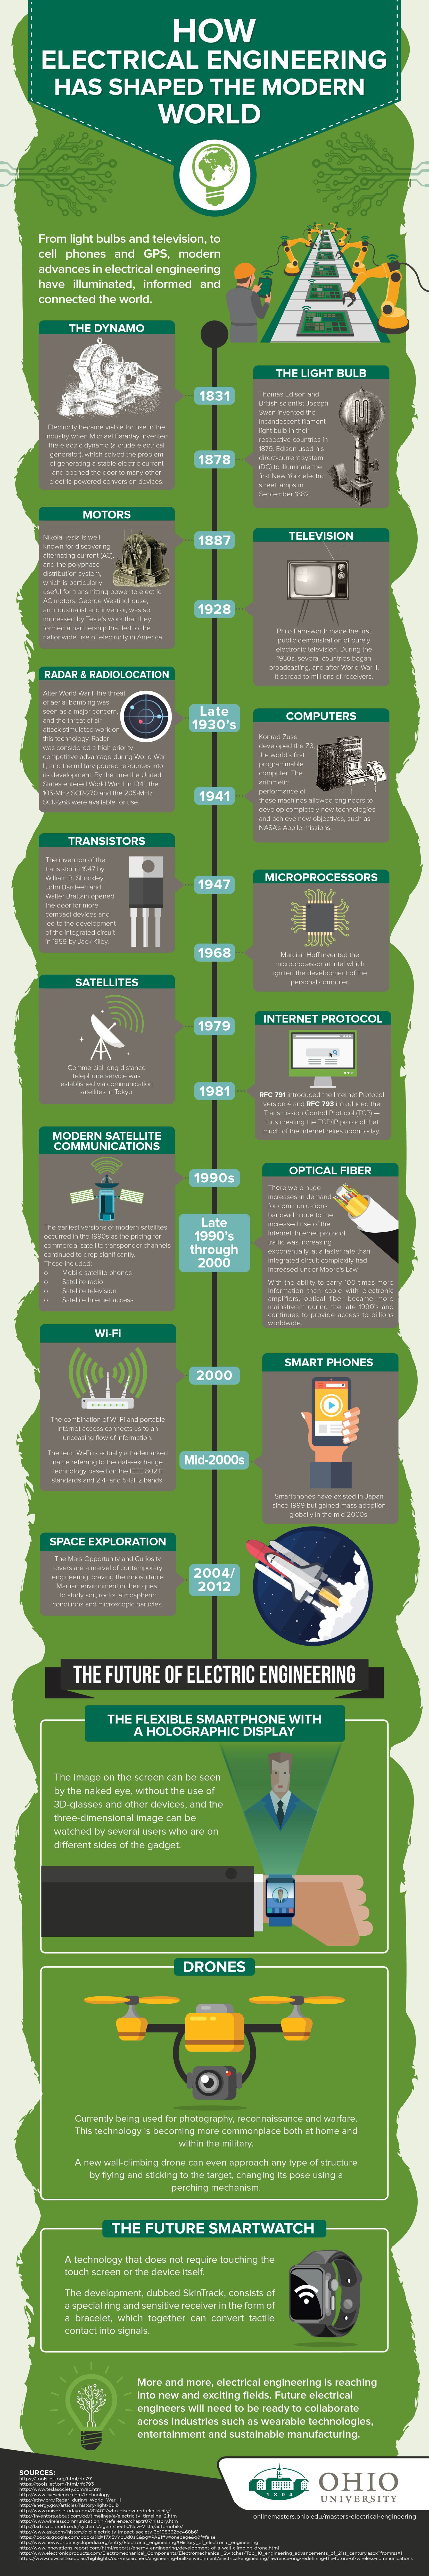 How Electrical Engineering Has Shaped the Modern World infographic